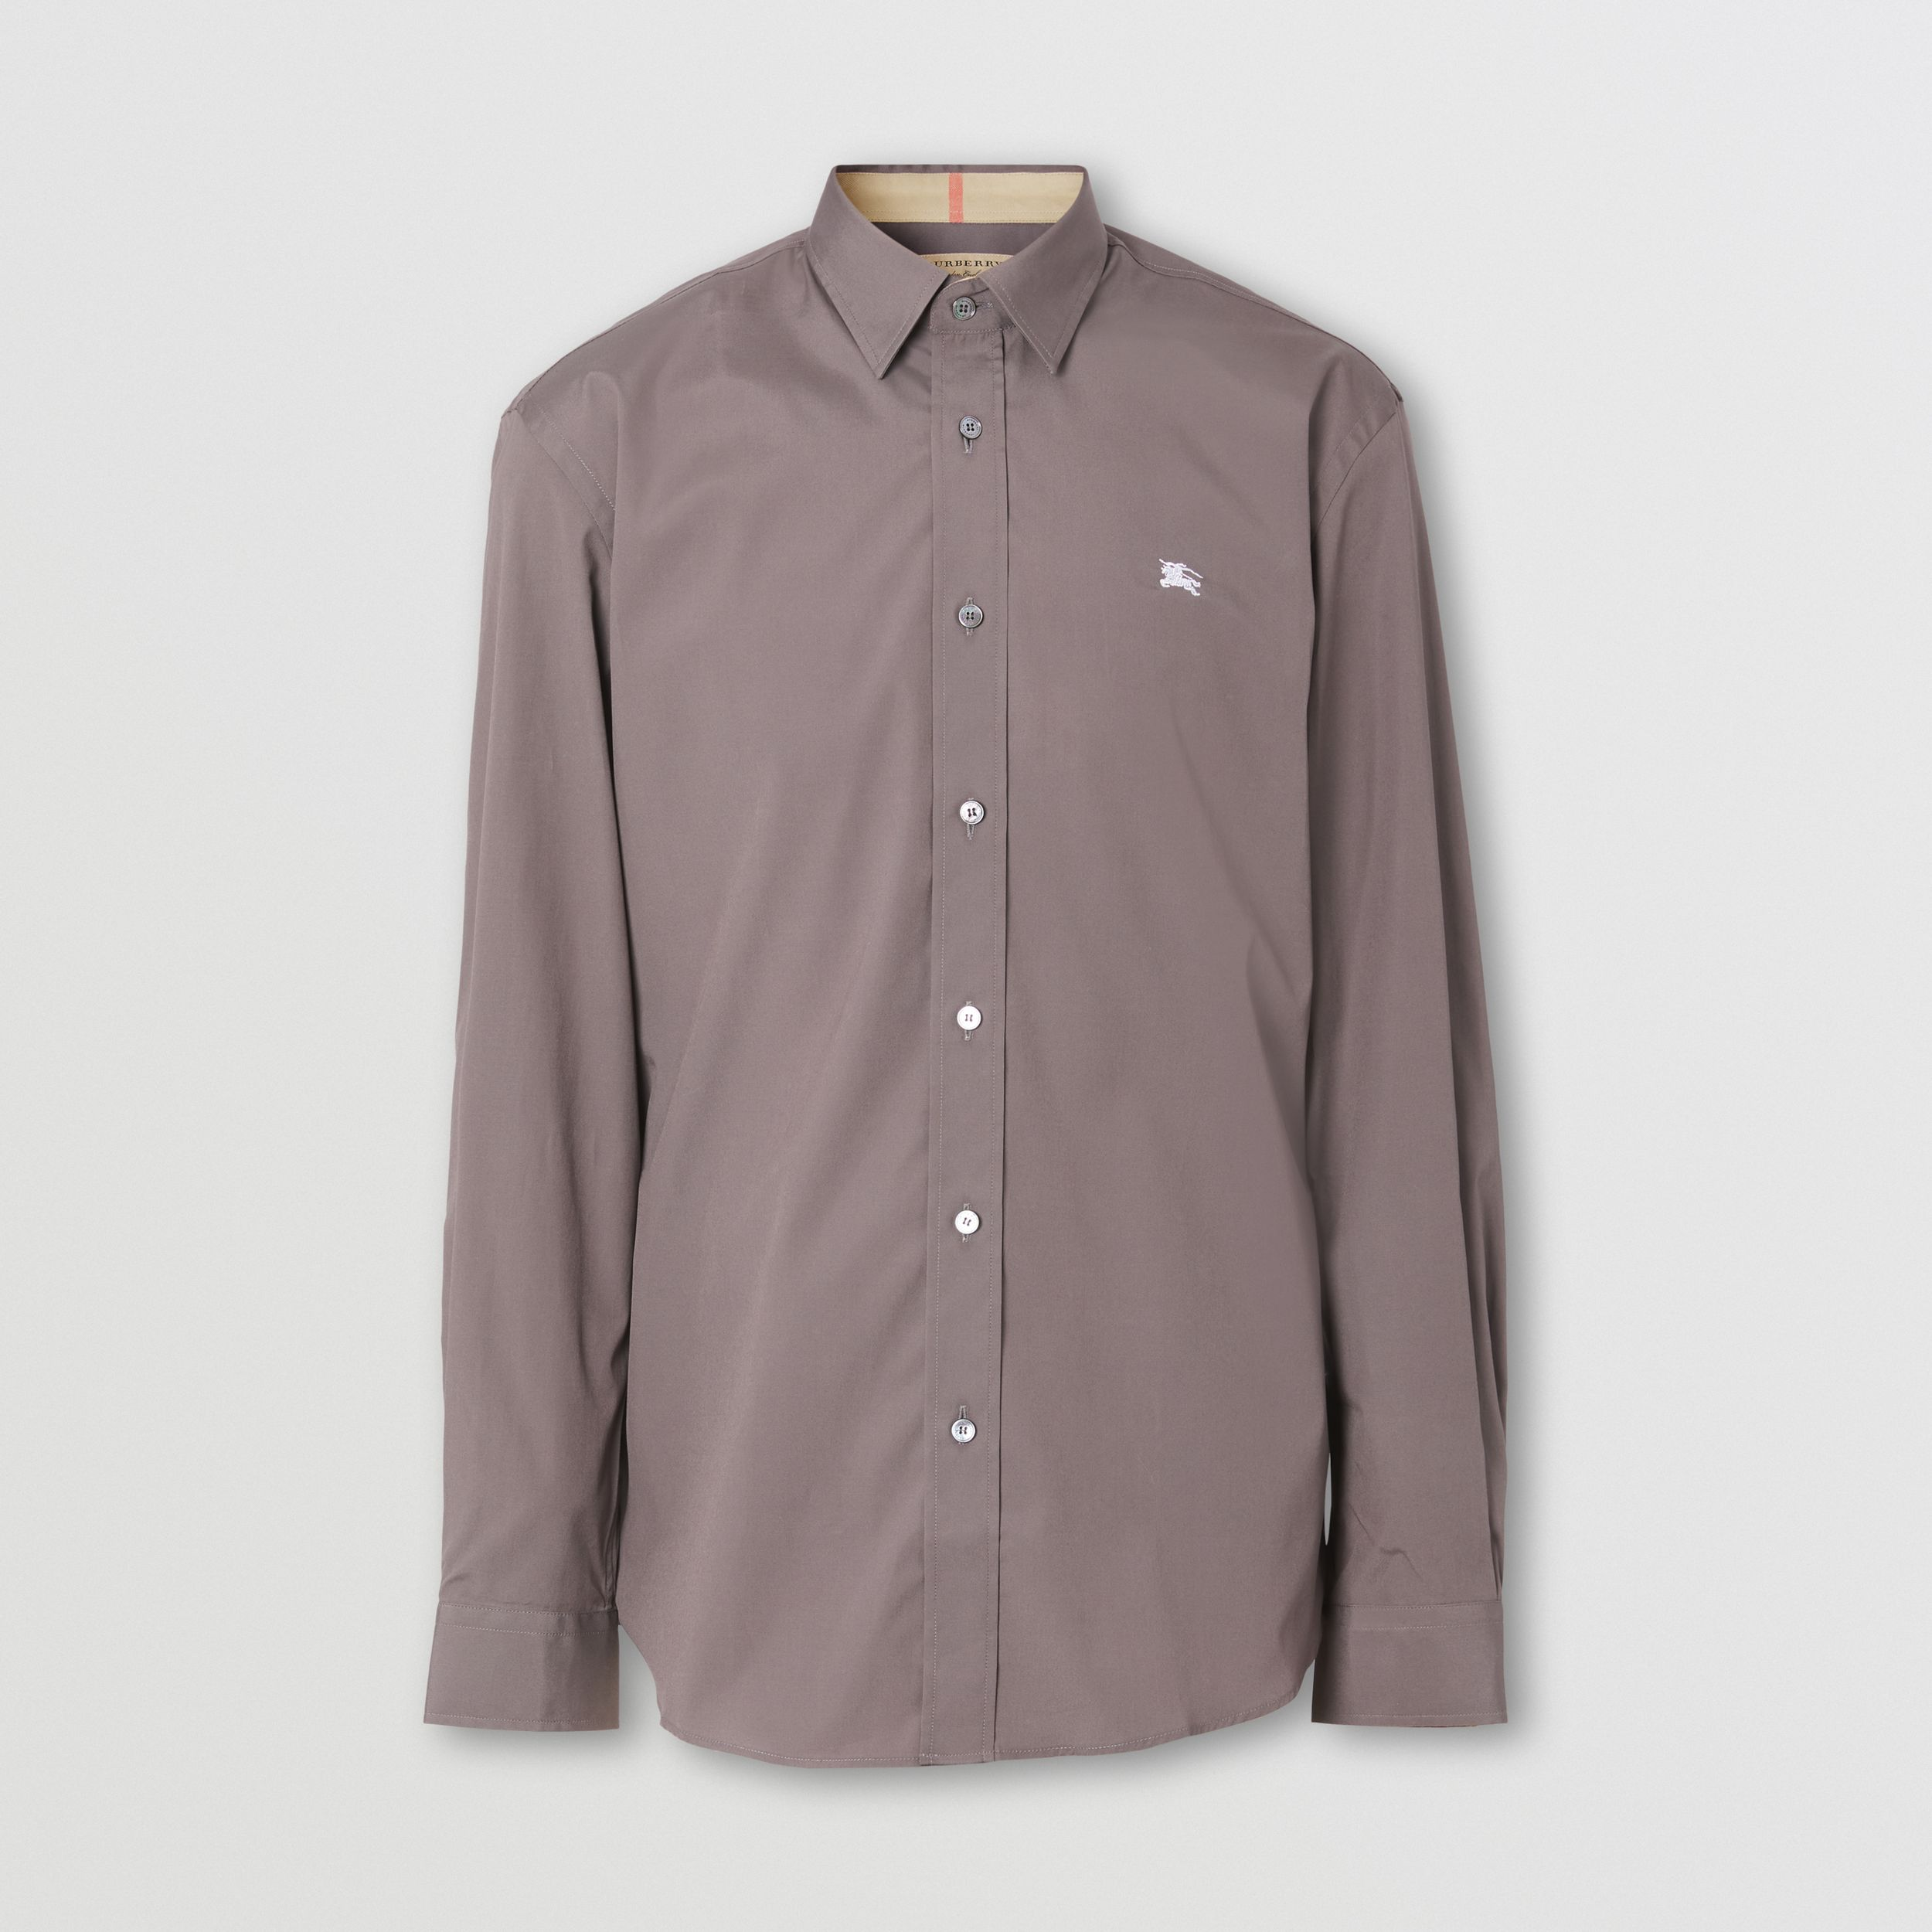 Embroidered EKD Stretch Cotton Poplin Shirt in Stone Grey - Men | Burberry - 1